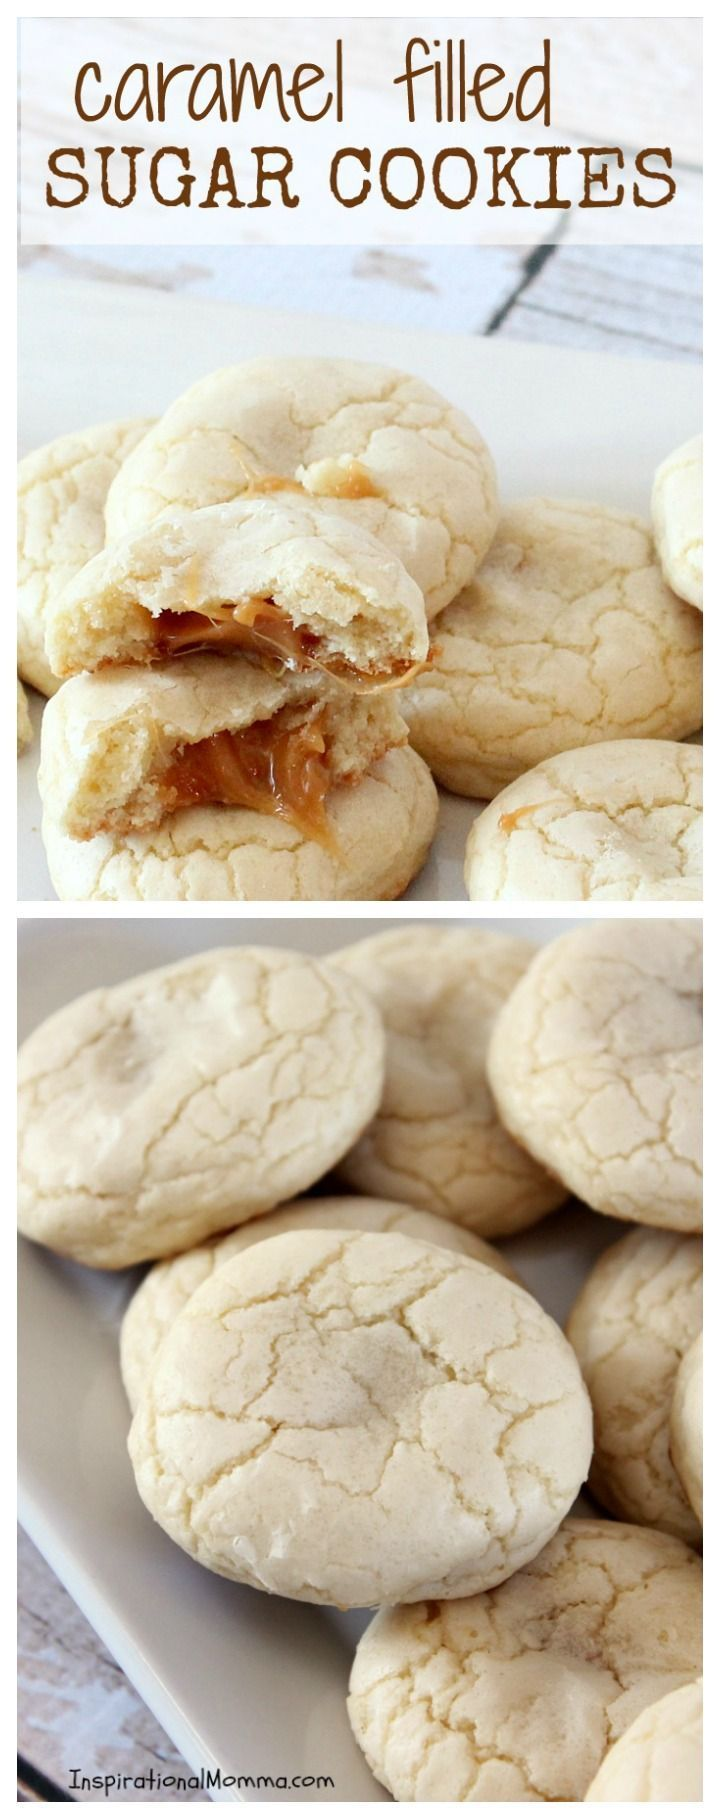 These Caramel Filled Sugar Cookies will melt in your mouth and blow your mind. The smooth caramel is the perfect surprise inside a soft, chewy cookie!